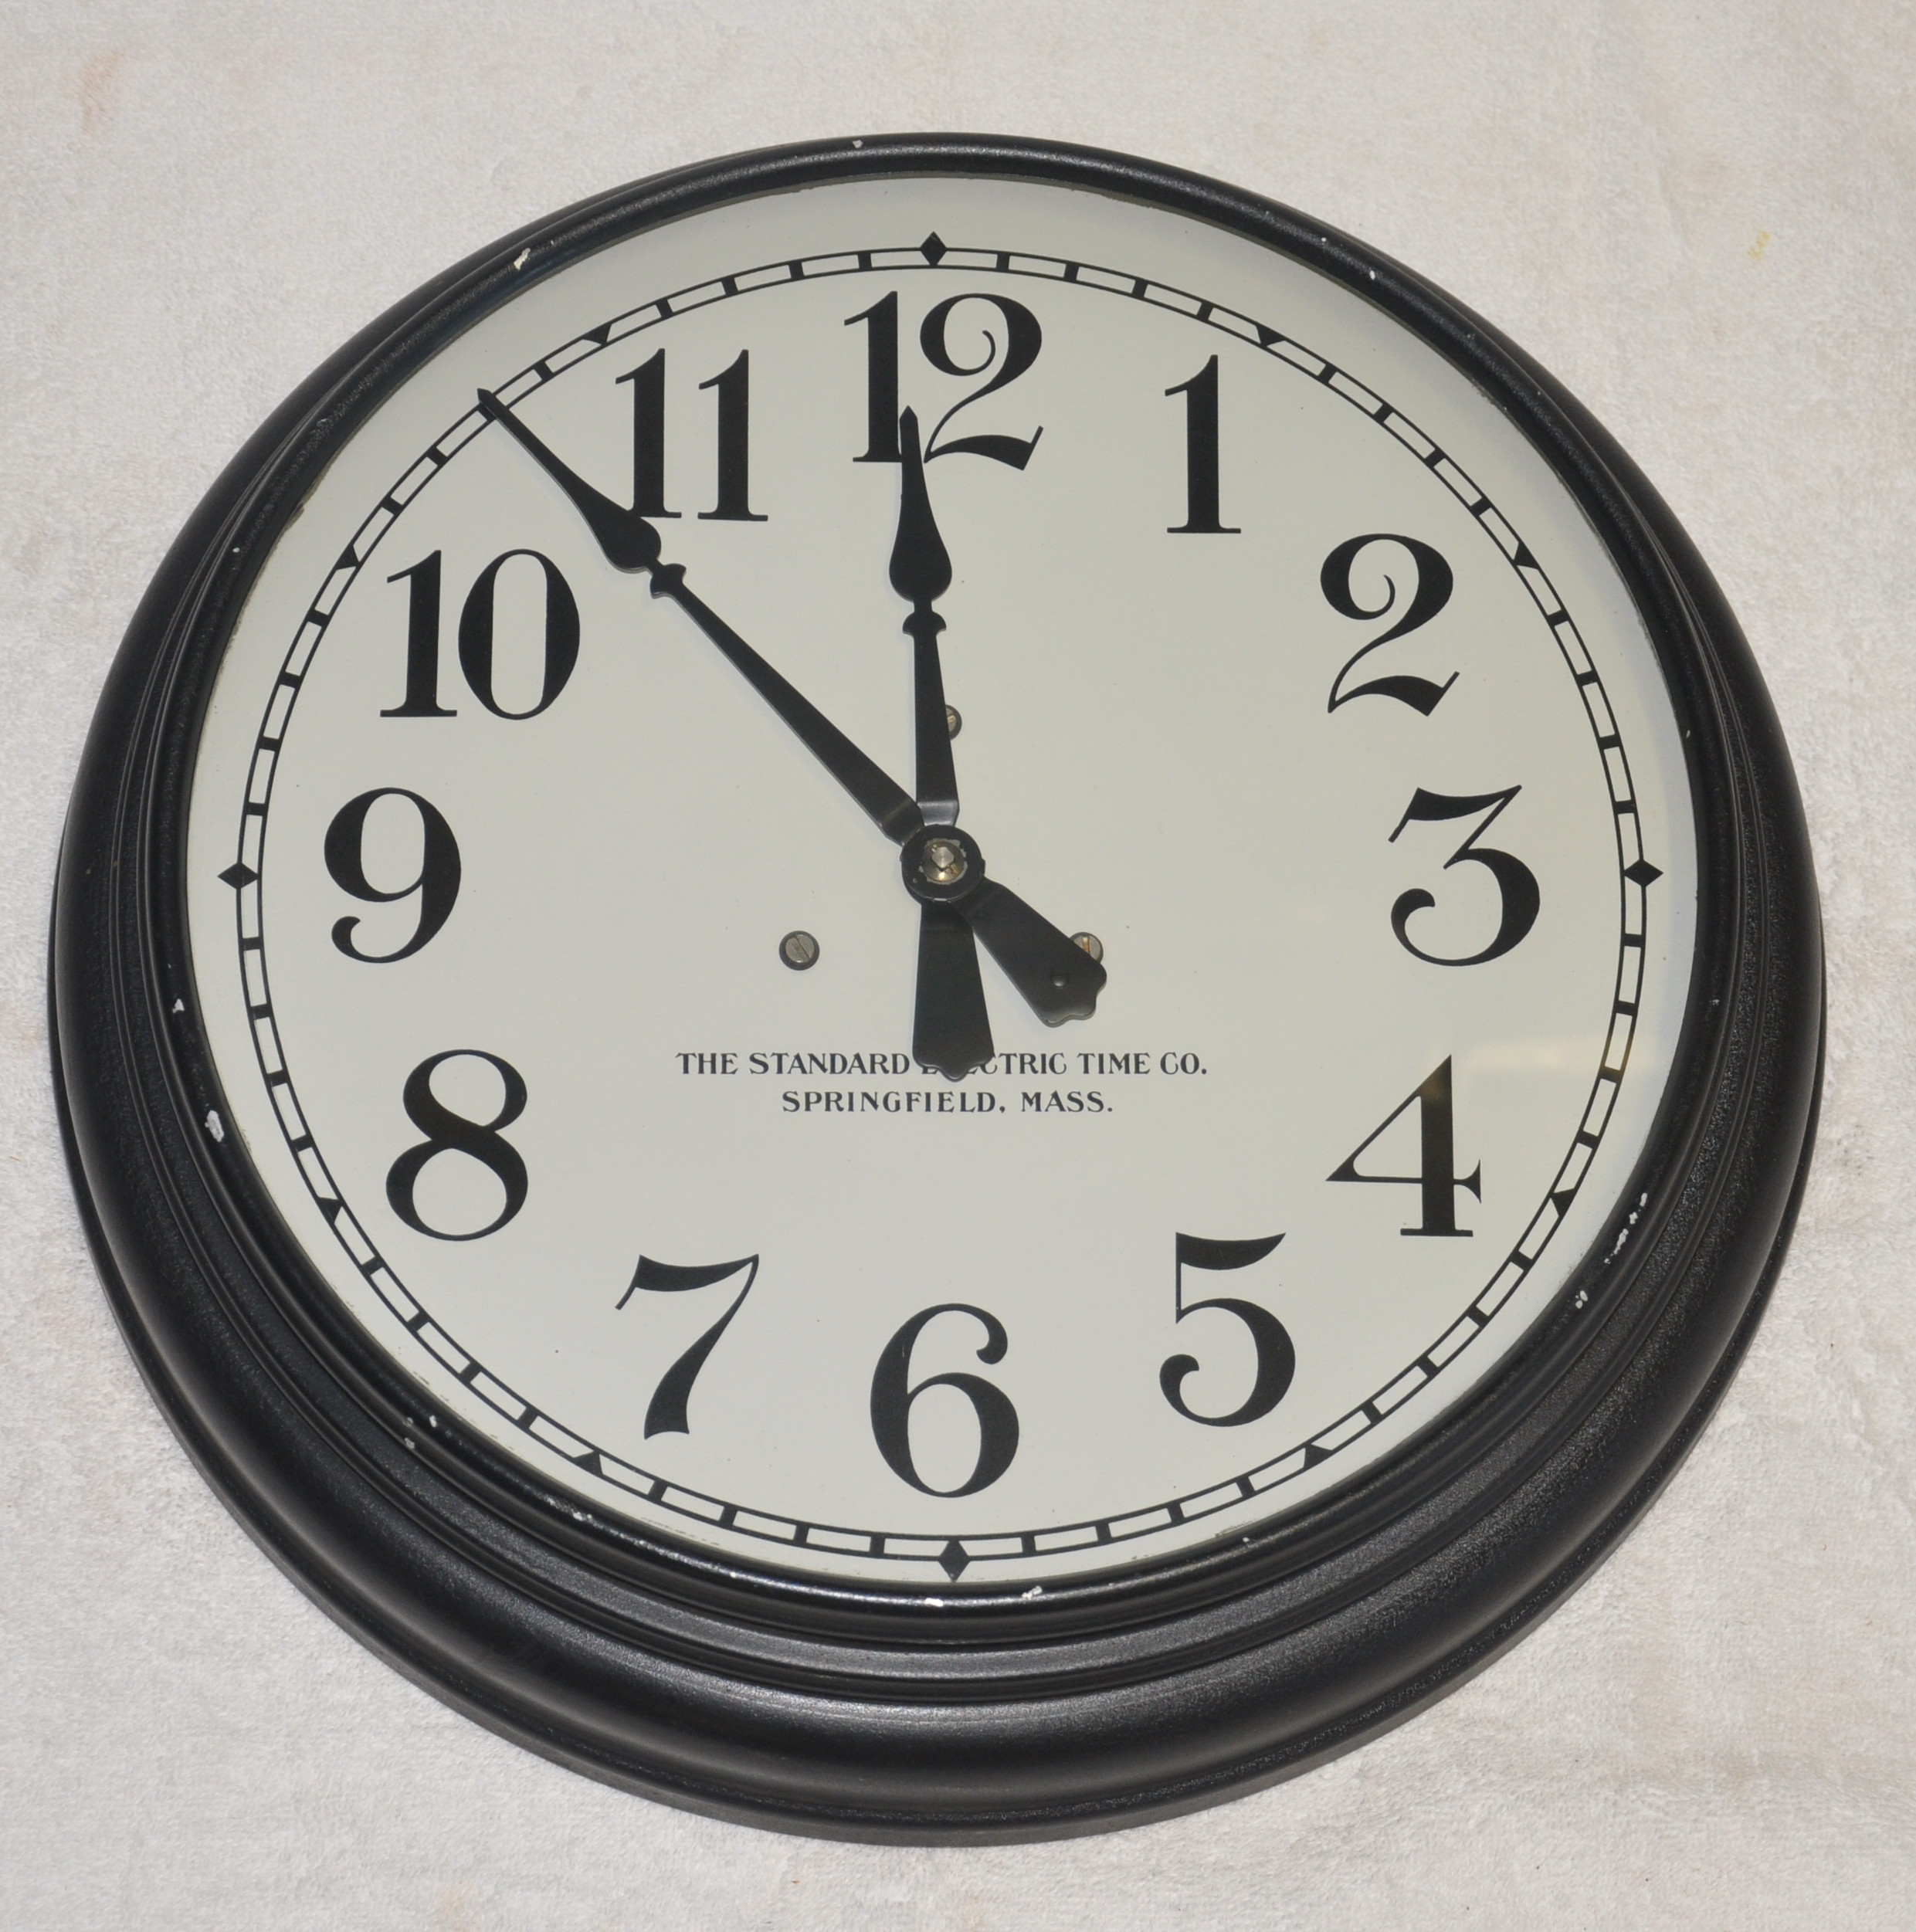 Standard_Electric_Time_Co._Electromechanical_Master_Clock_02